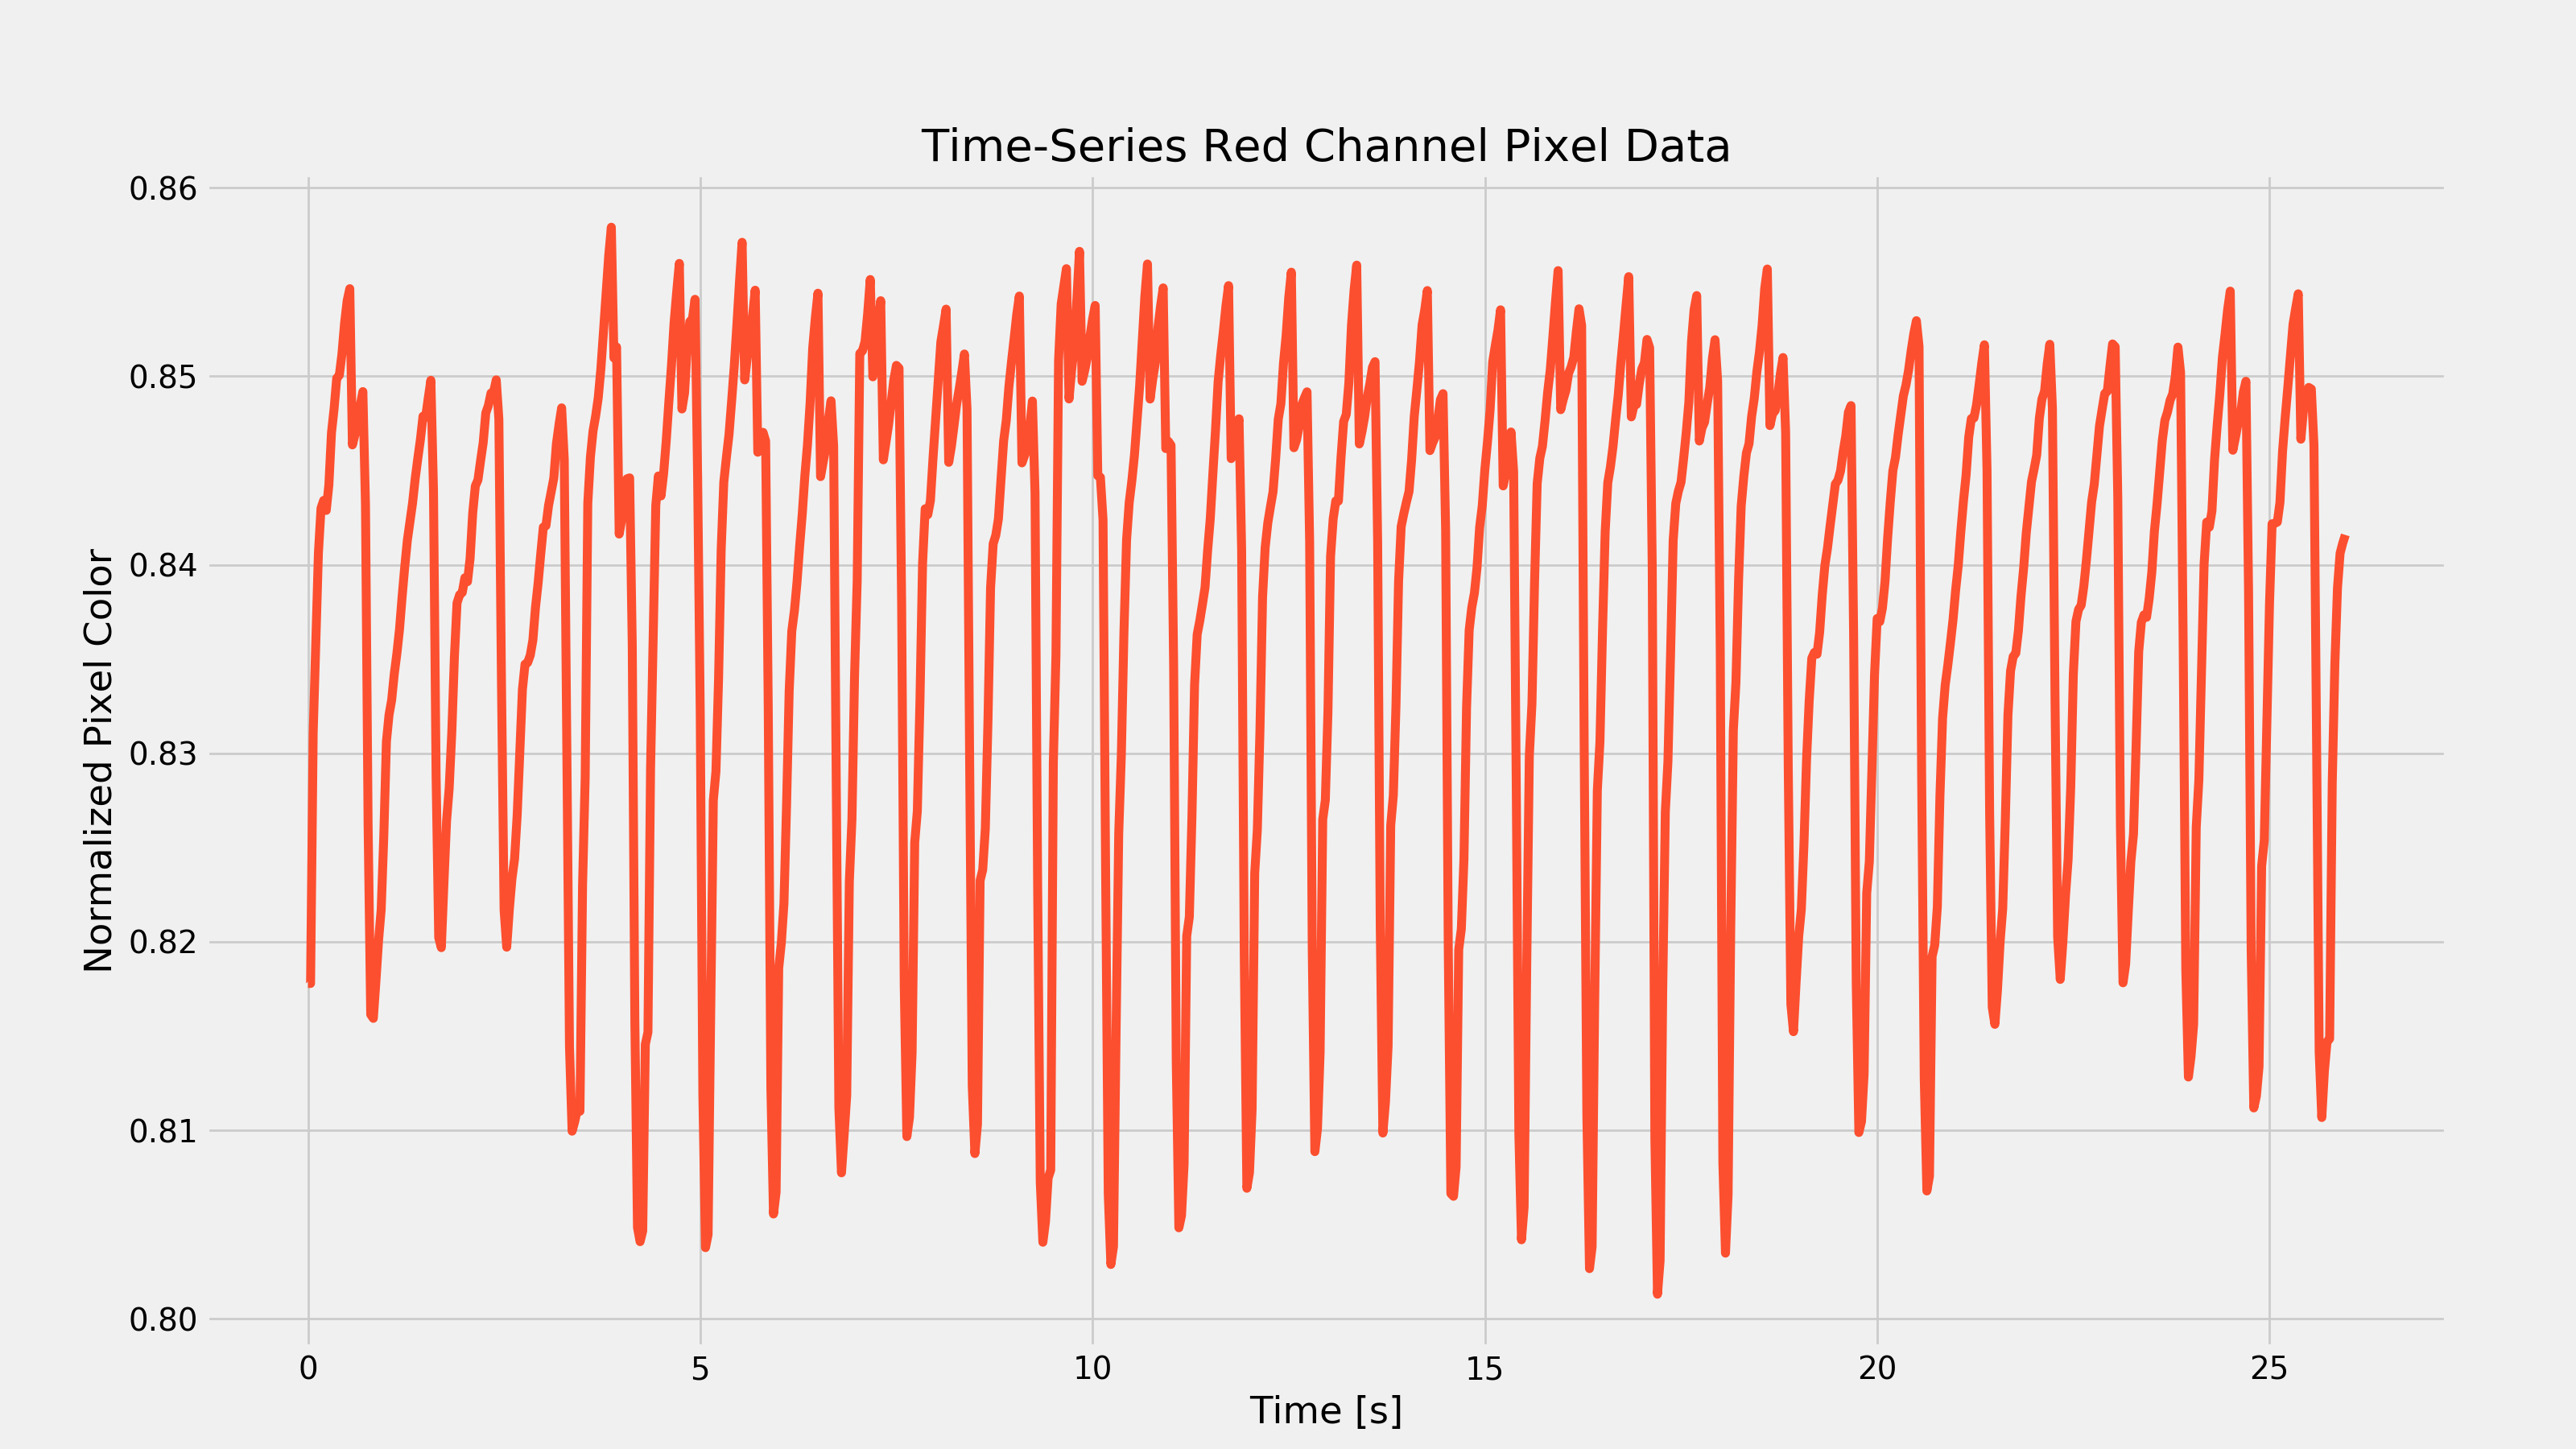 Resting Heart Rate in Time